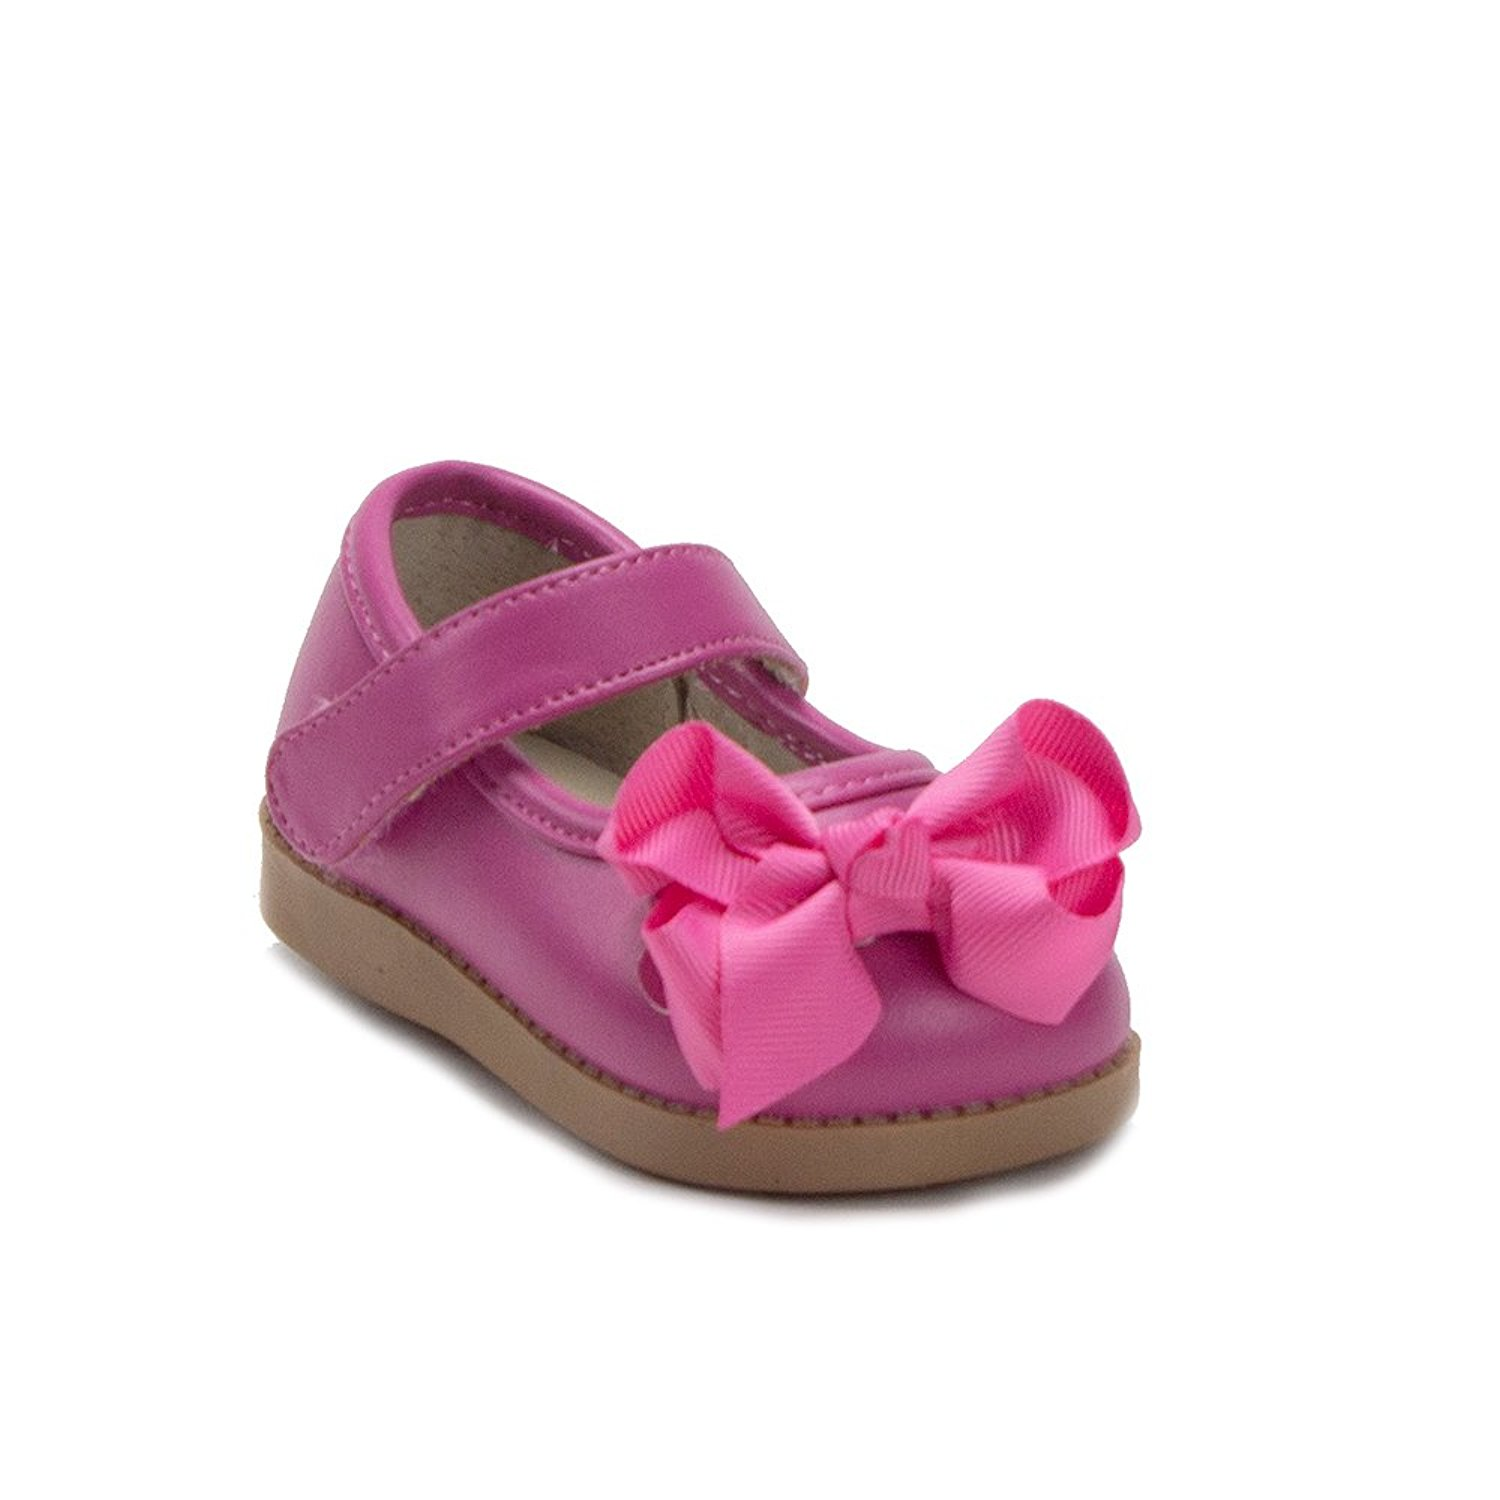 487a5b53ec70 Get Quotations · Mooshu Trainers Toddler Girls Princess Bow Mary Jane  Squeaker Flats Shoes